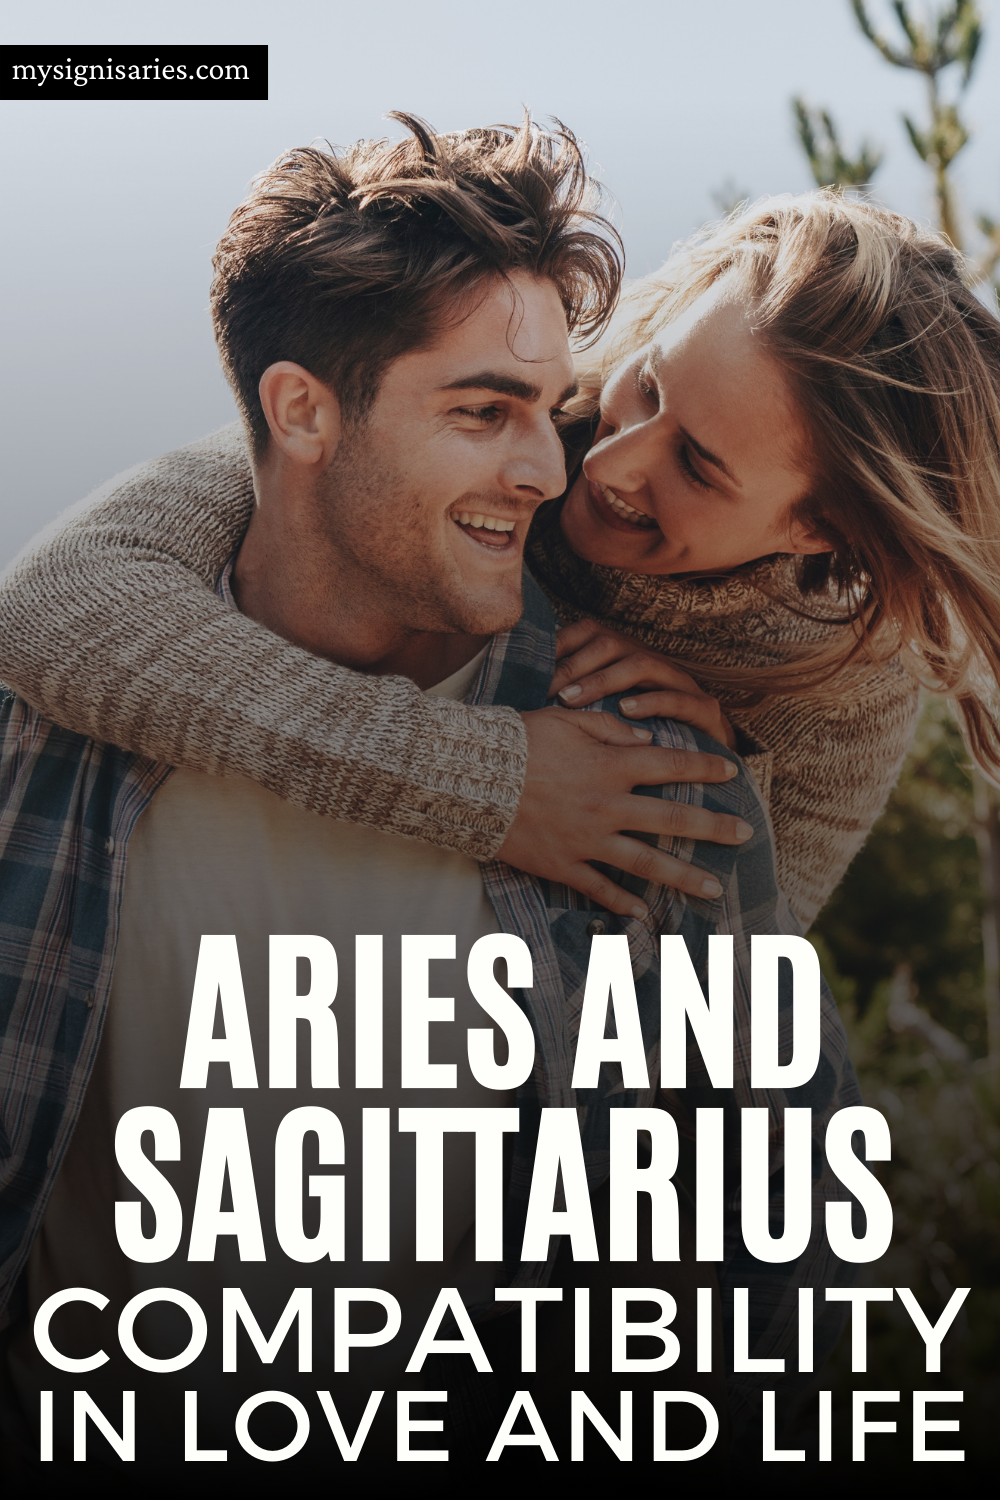 Aries And Sagittarius Compatibility In Love And Life #aries #arieslove #compatibility #zodiac #astrology